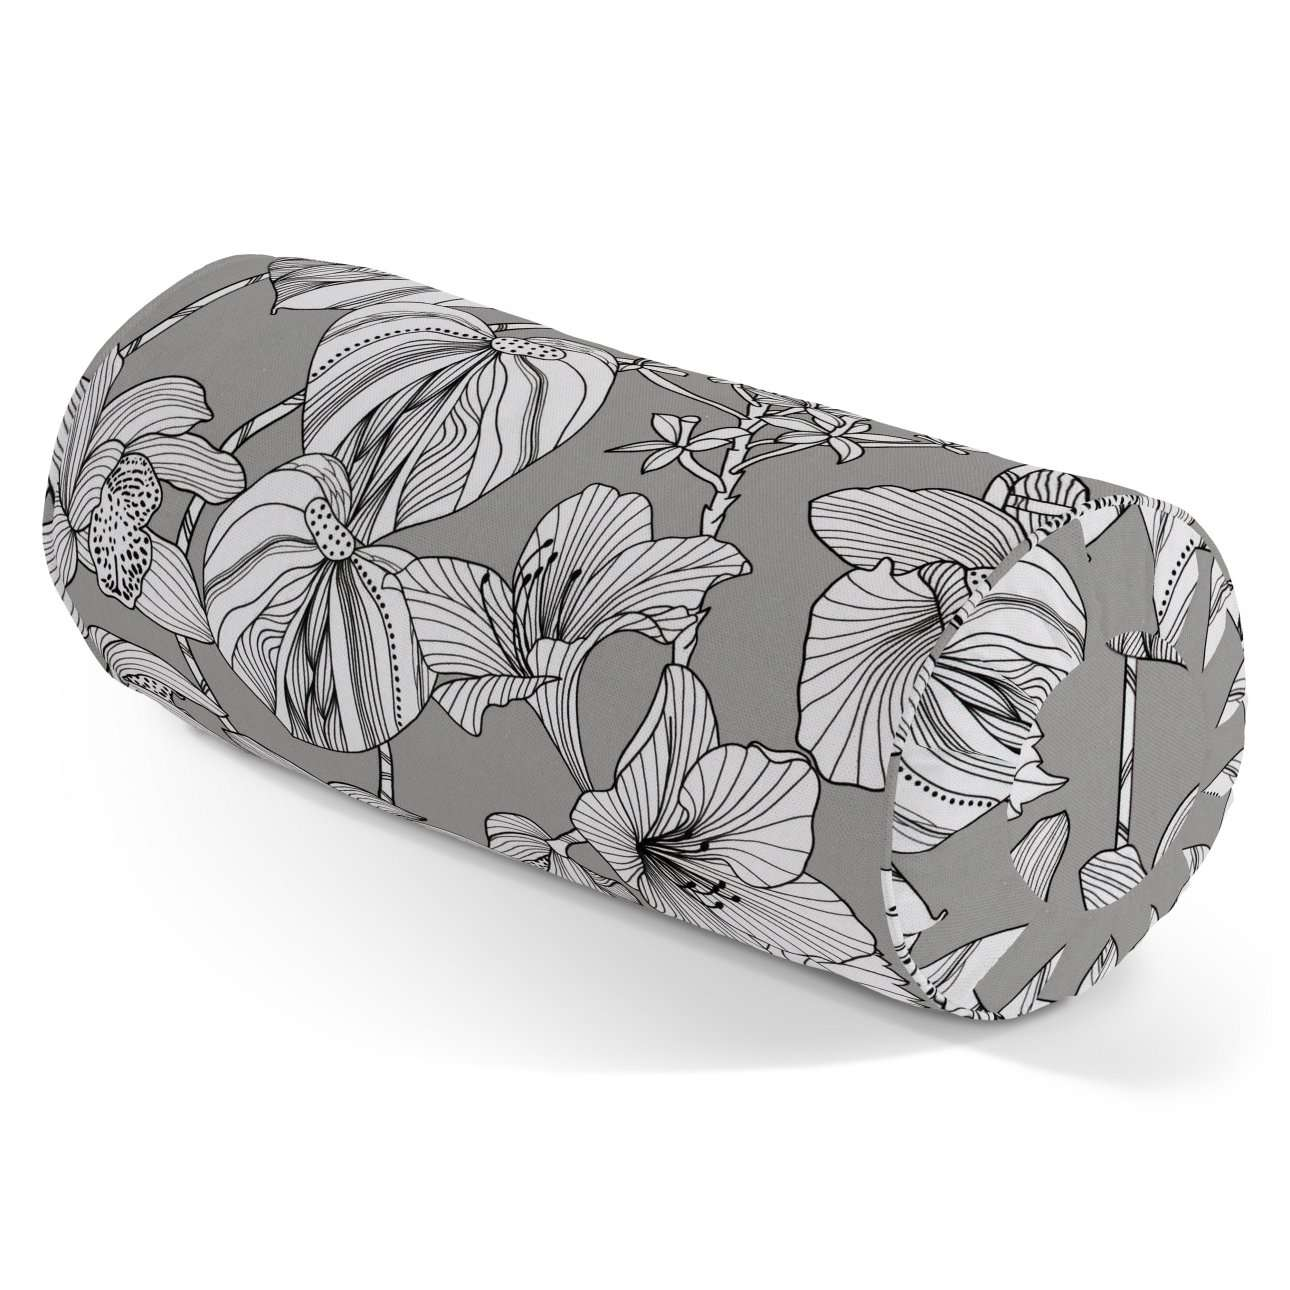 Bolster cushion with pleats in collection Brooklyn, fabric: 137-80